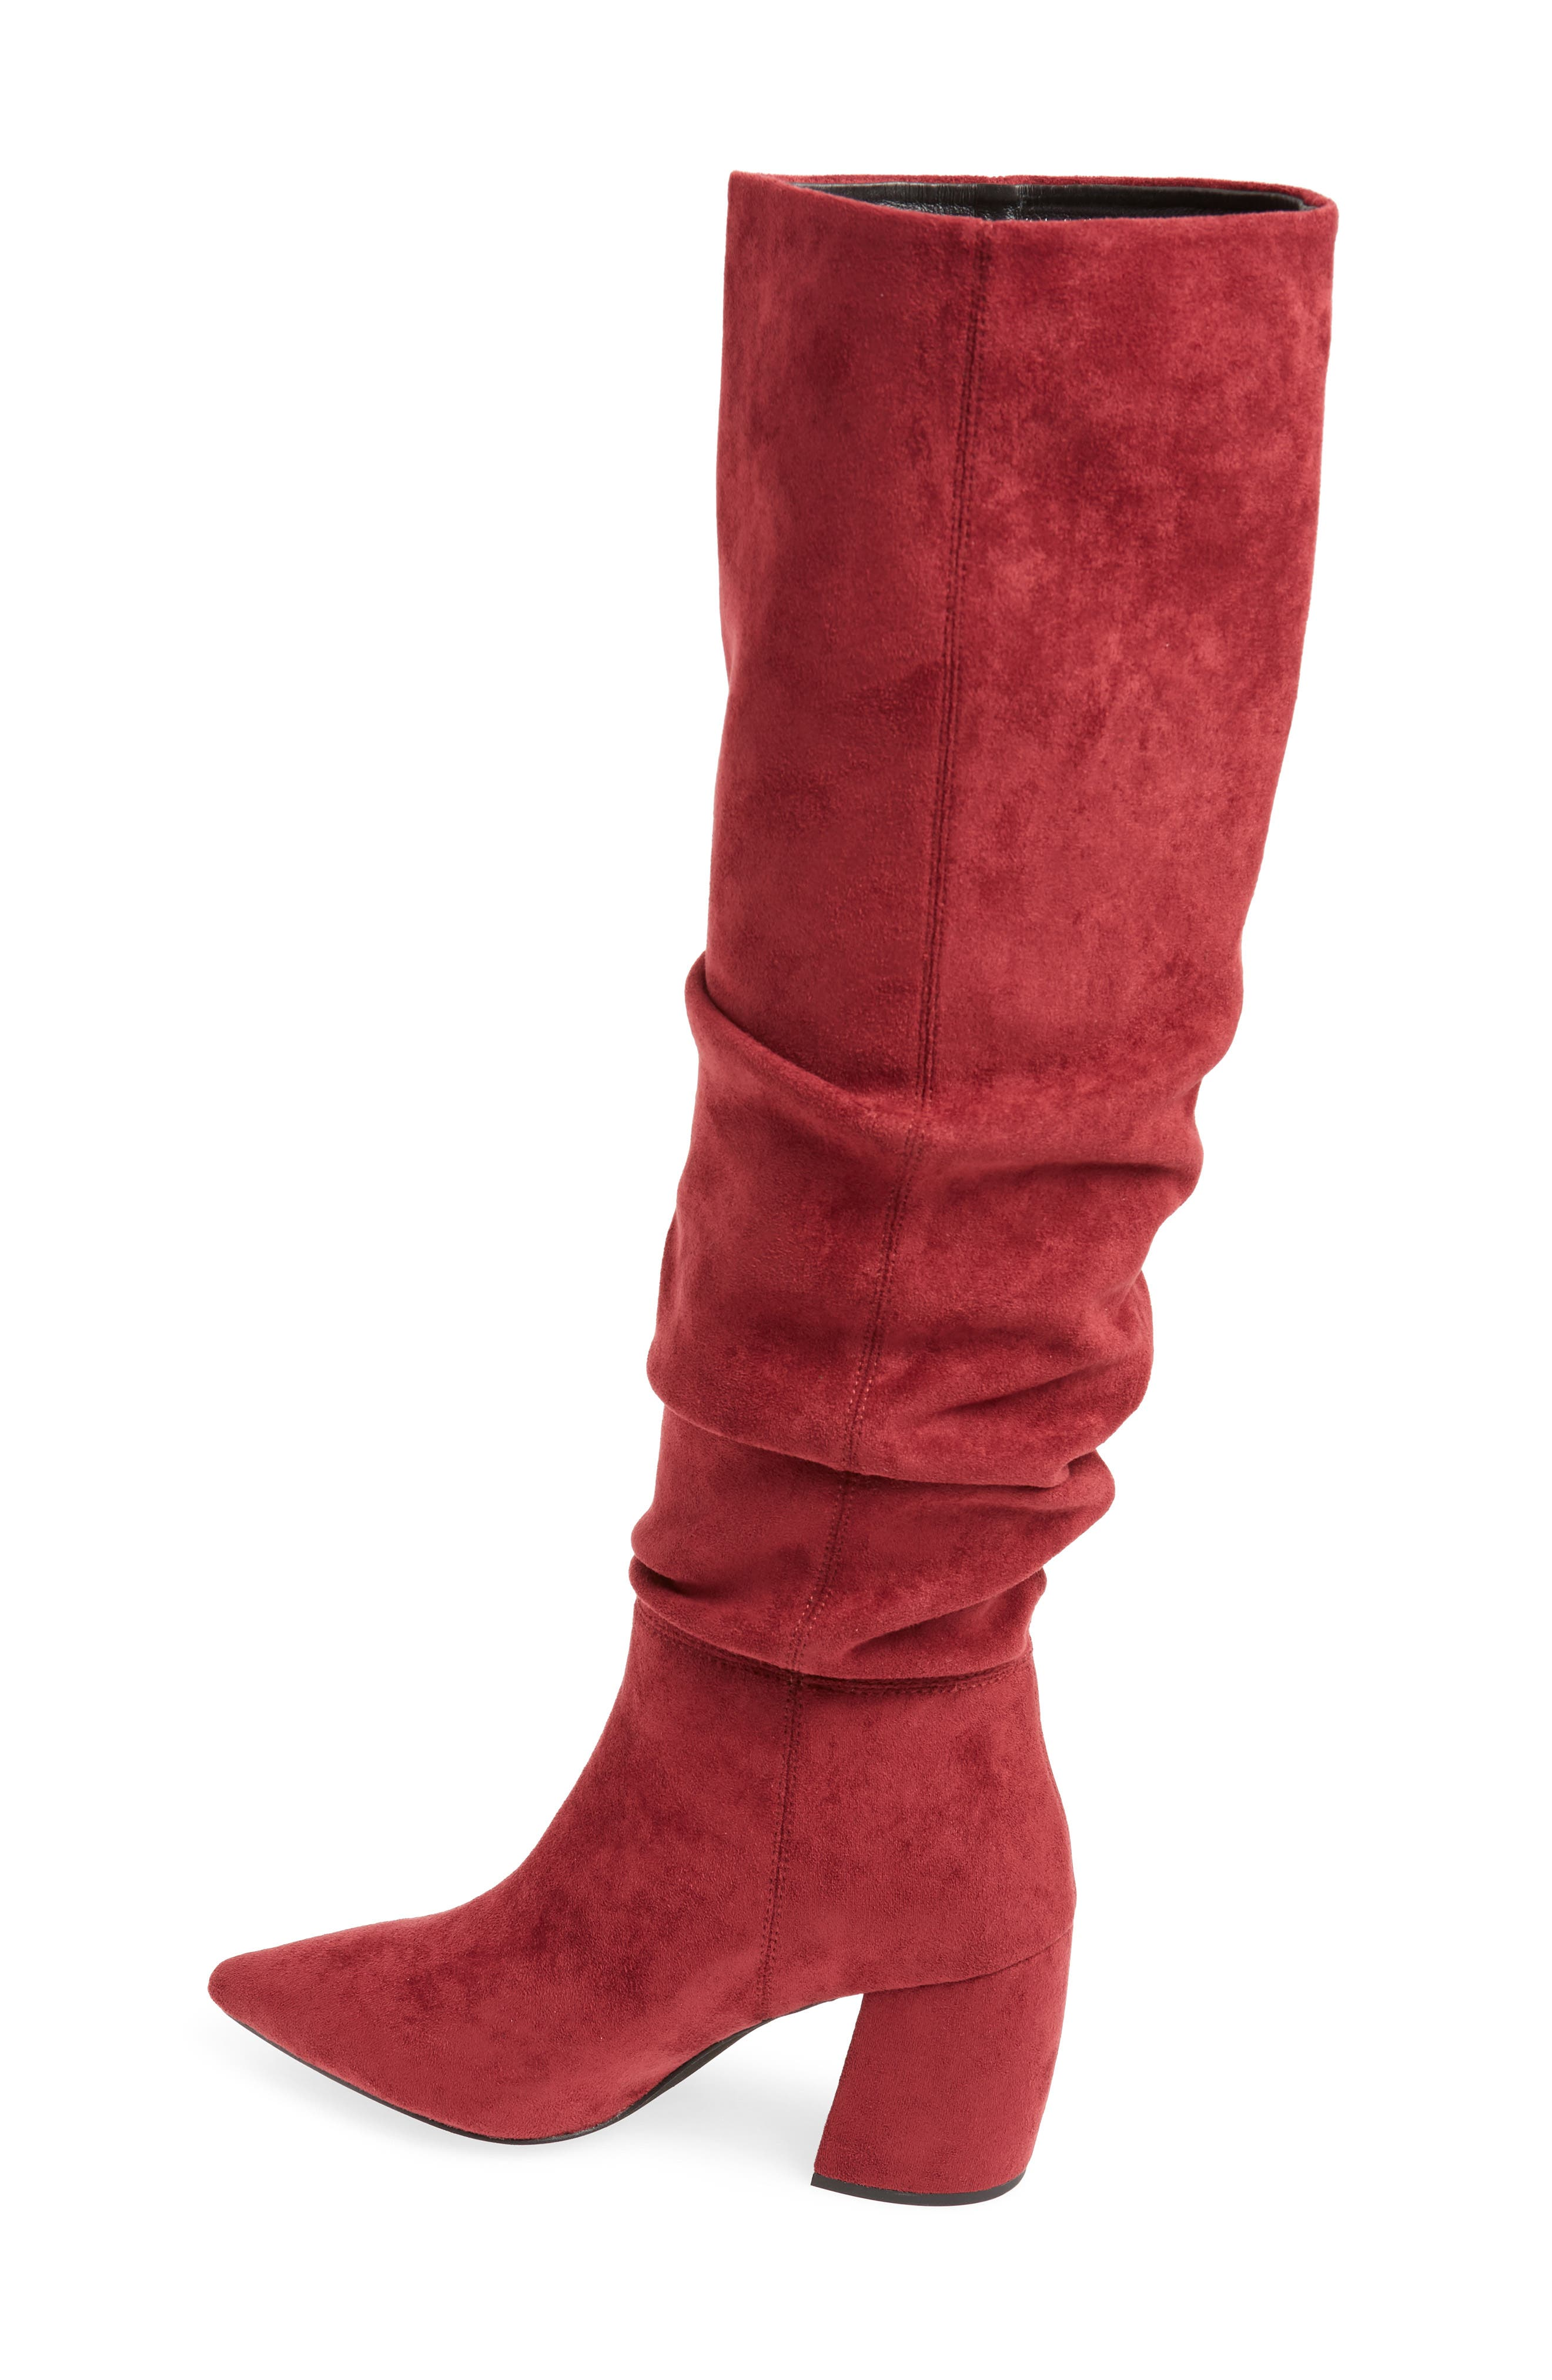 Final Slouch Over the Knee Boot,                             Alternate thumbnail 2, color,                             WINE SUEDE